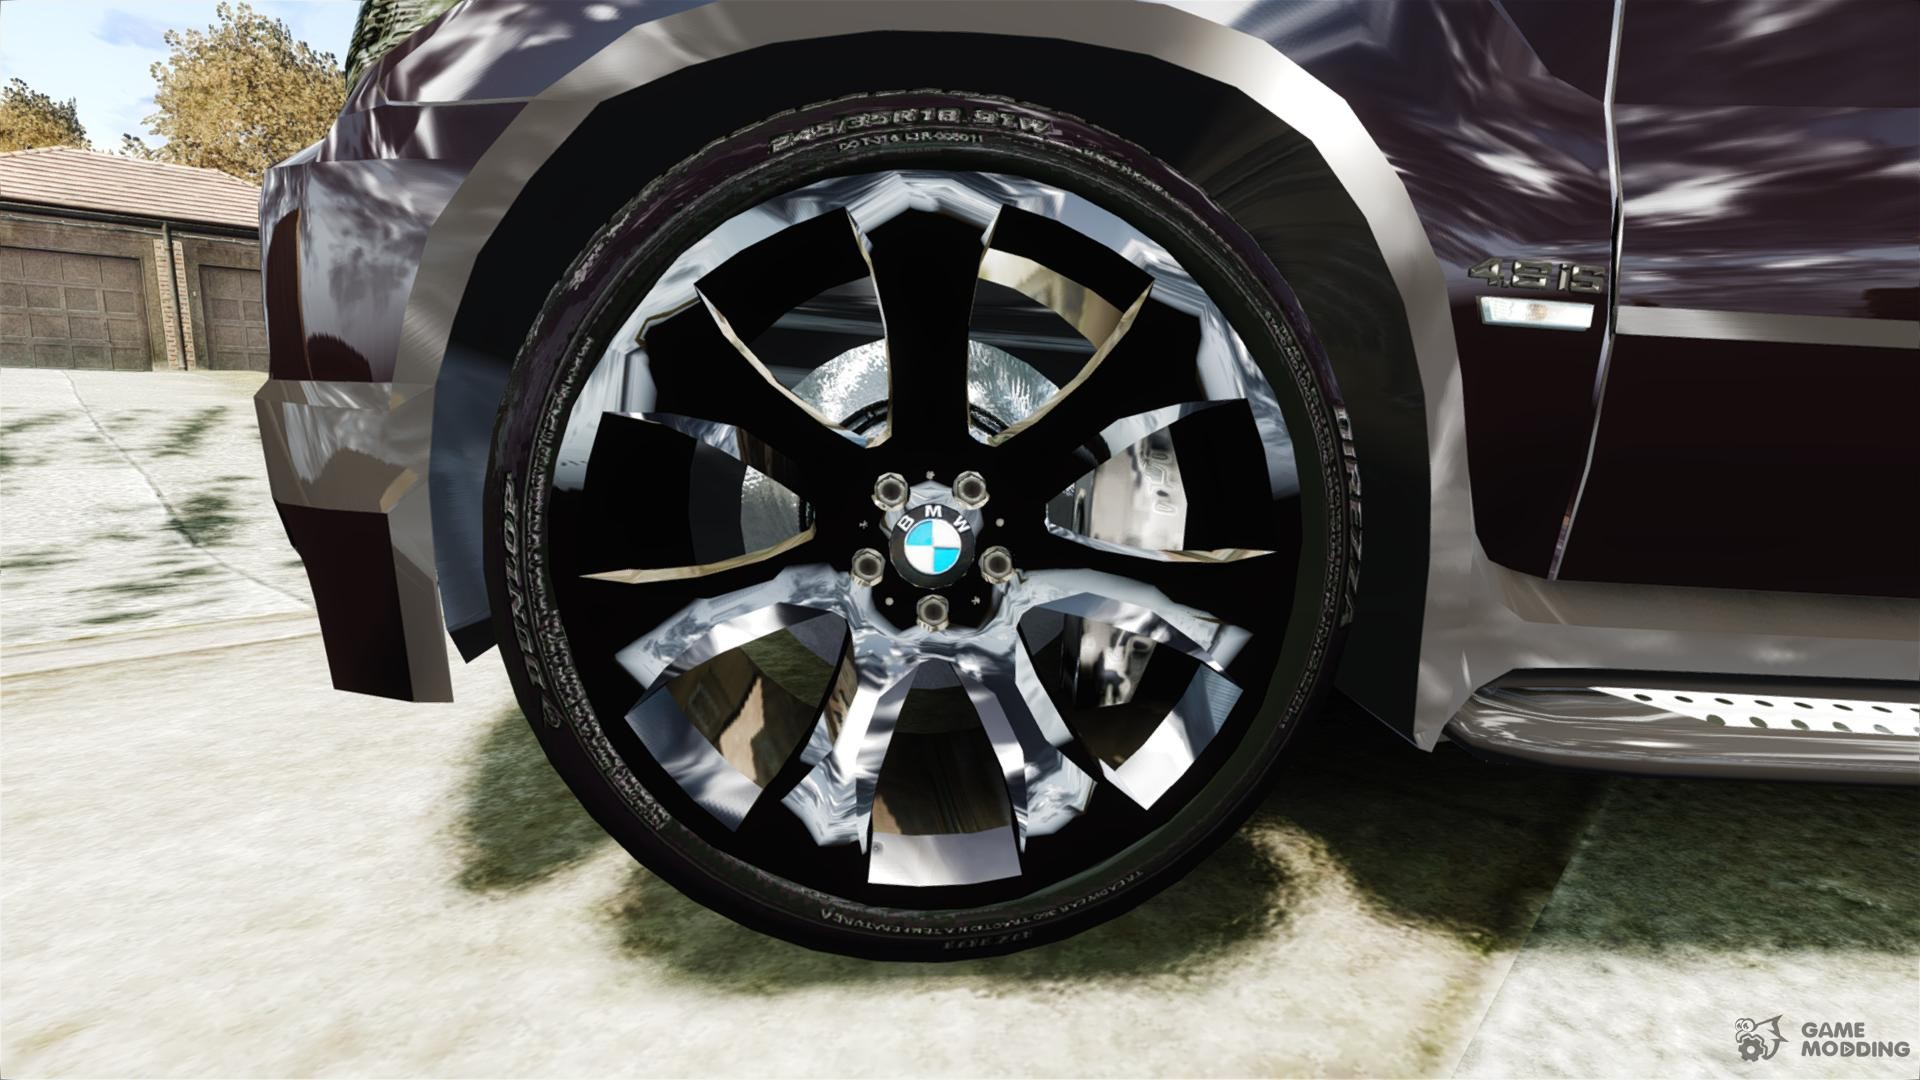 bugatti veyron tires size html with 41789 Bmw X5 48is Baku on 41789 Bmw X5 48is Baku in addition Ford Ecosport Gets Raptor Like Edition additionally F211 Black 4132848 besides Honda Pioneer 1000 Wheels Tires Side By Side Atv Utv Sxs further Toyota Camry 2008 Price In Japan 969.